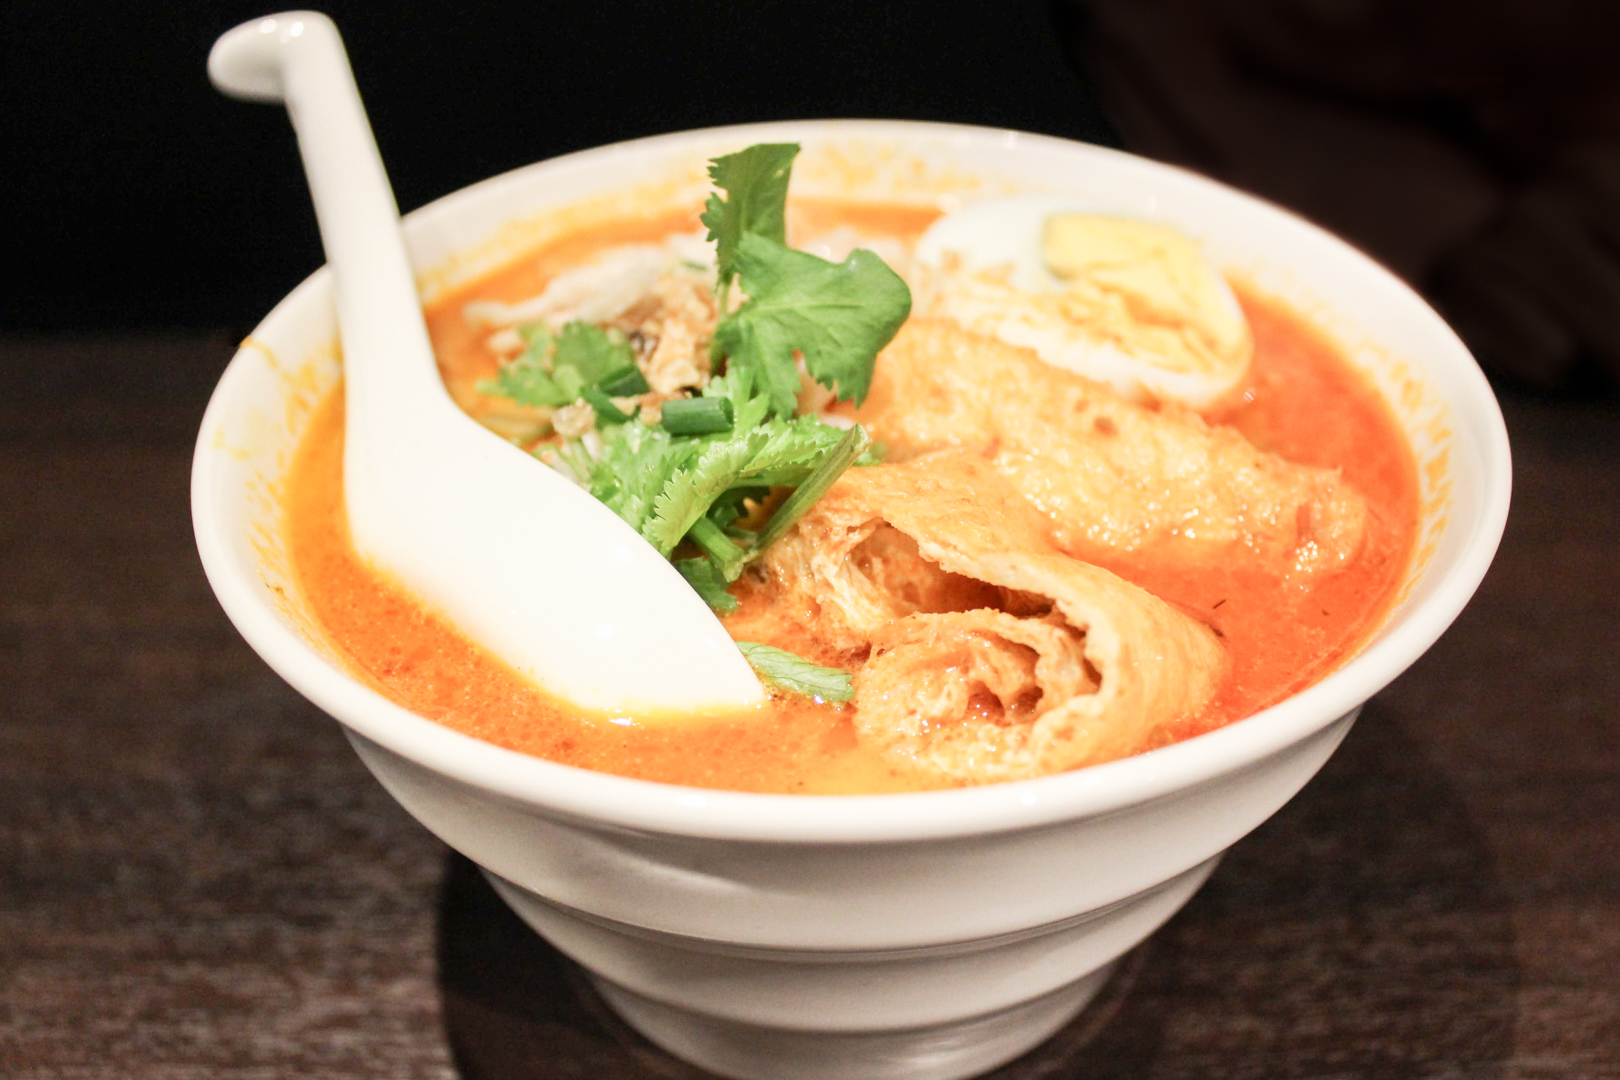 Halal restaurants in Tokyo - a bowl of spicy, orange-colored mi kari with a white spoon in it at Malay Asian Cuisine.